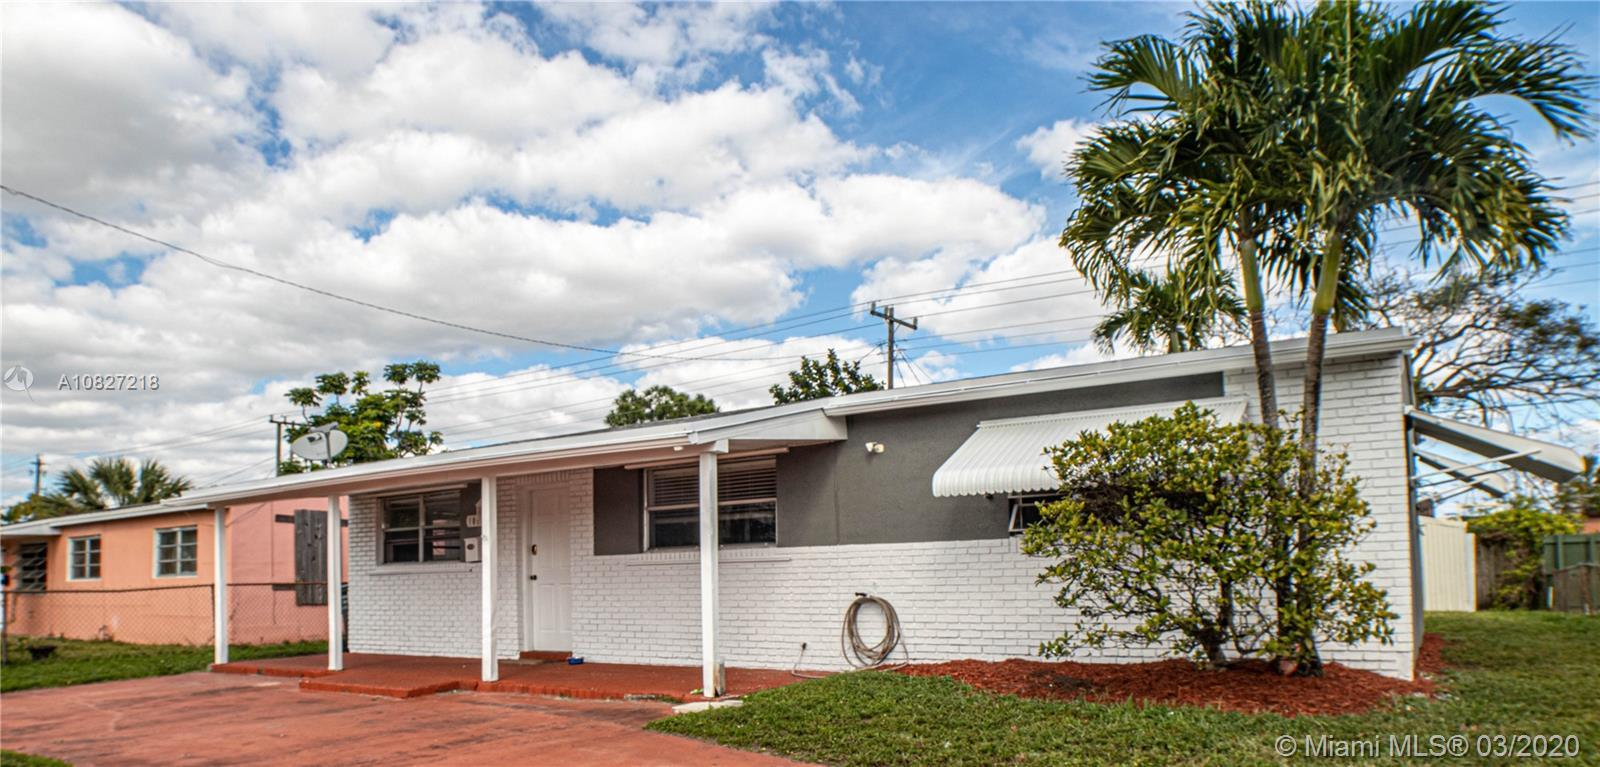 Clean 3 bedroom home in a nice family oriented neighborhood.  Large kitchen with lots of counter spa